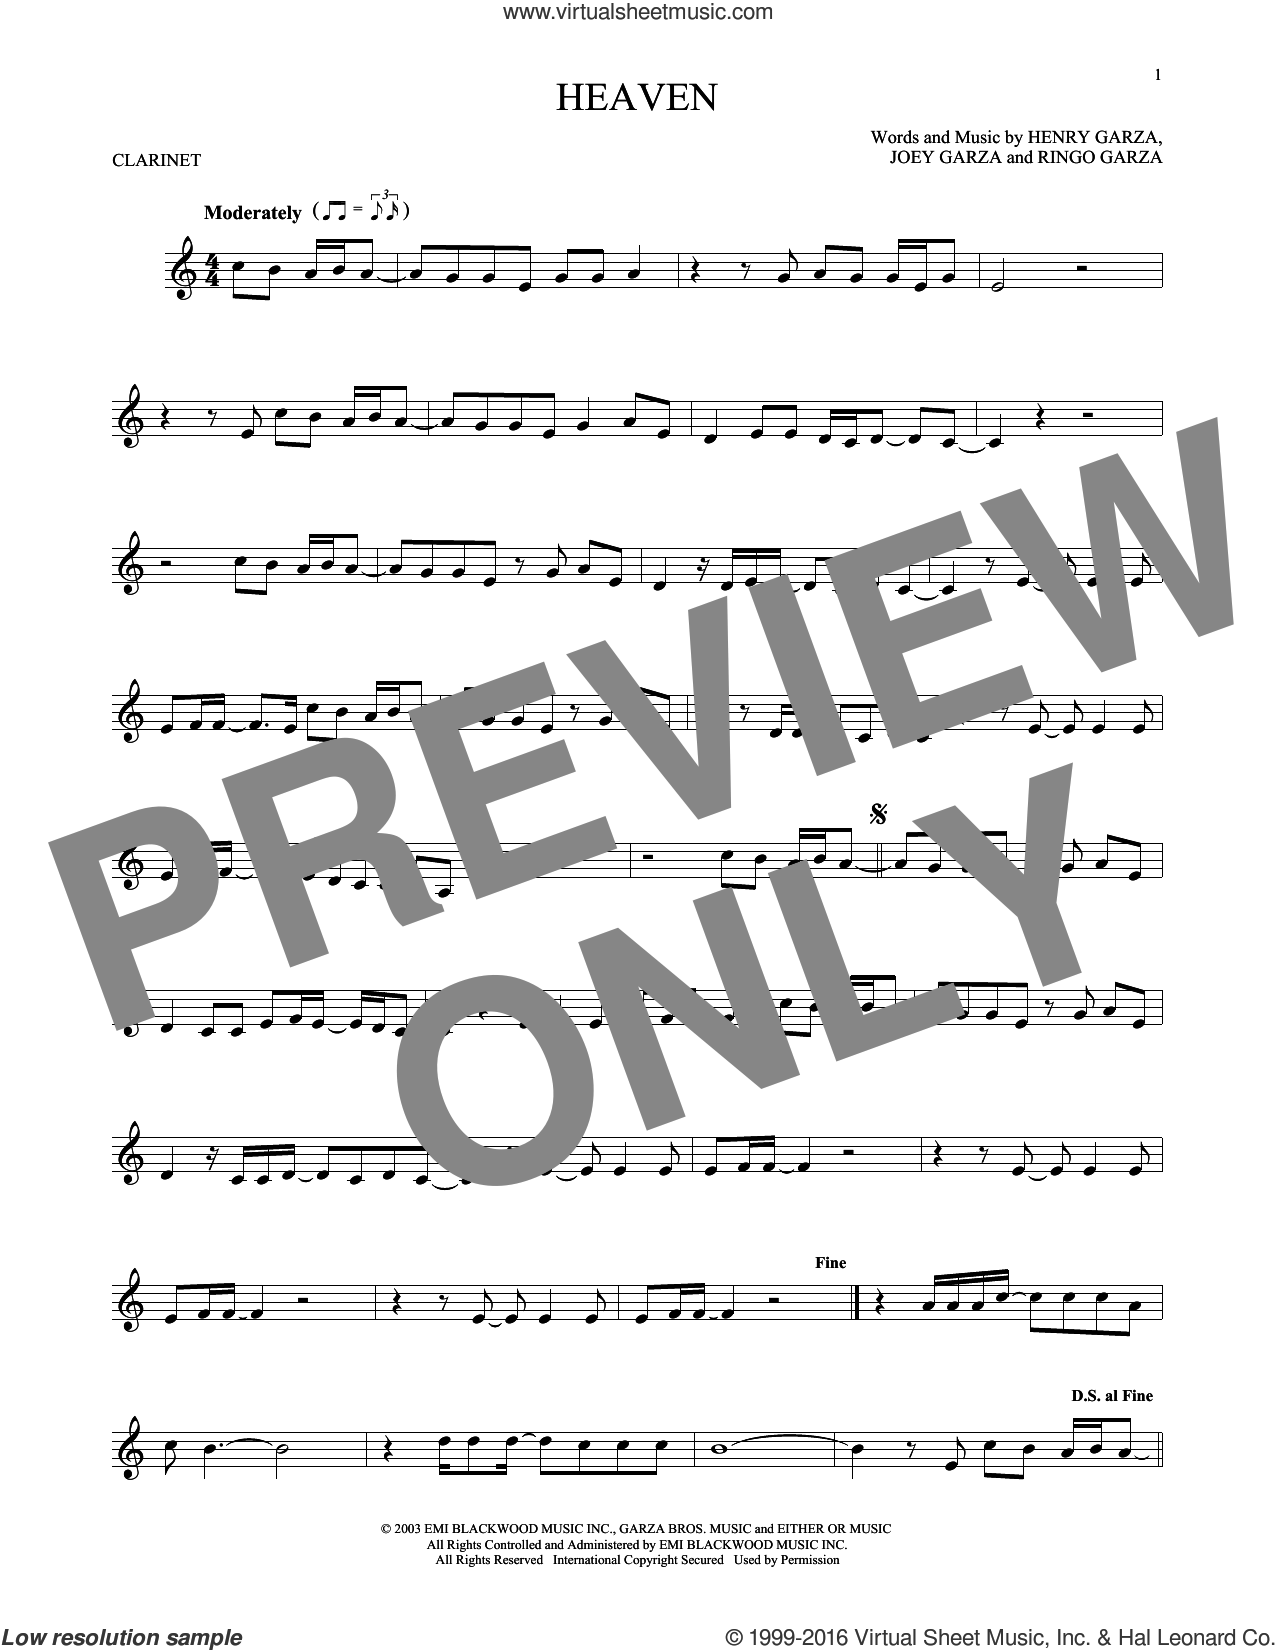 Heaven sheet music for clarinet solo by Los Lonely Boys, Henry Garza, Joey Garza and Ringo Garza, intermediate skill level